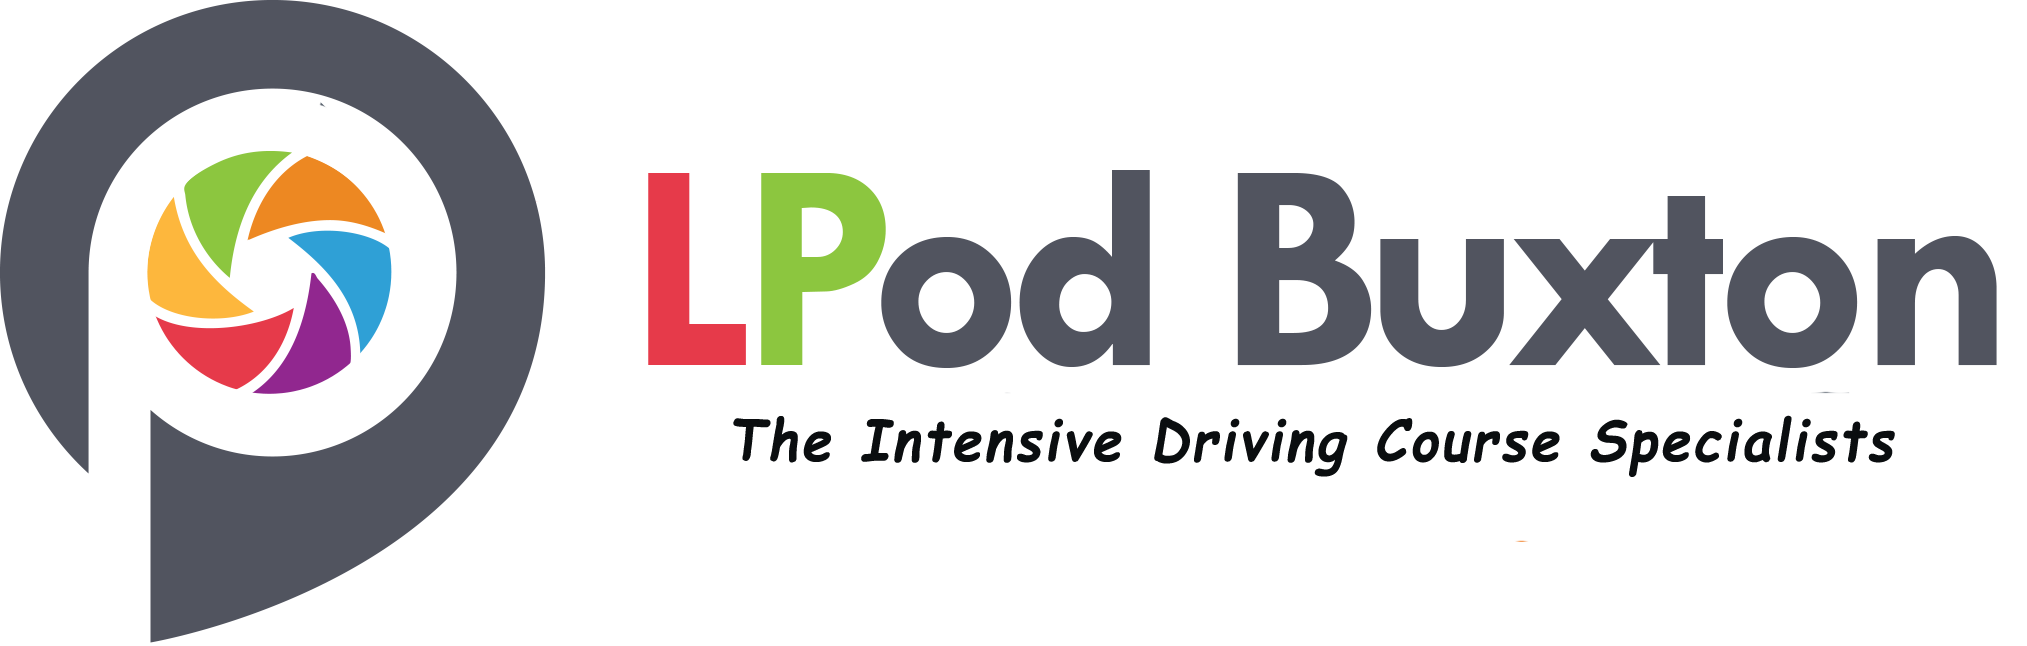 intensive driving courses Buxton